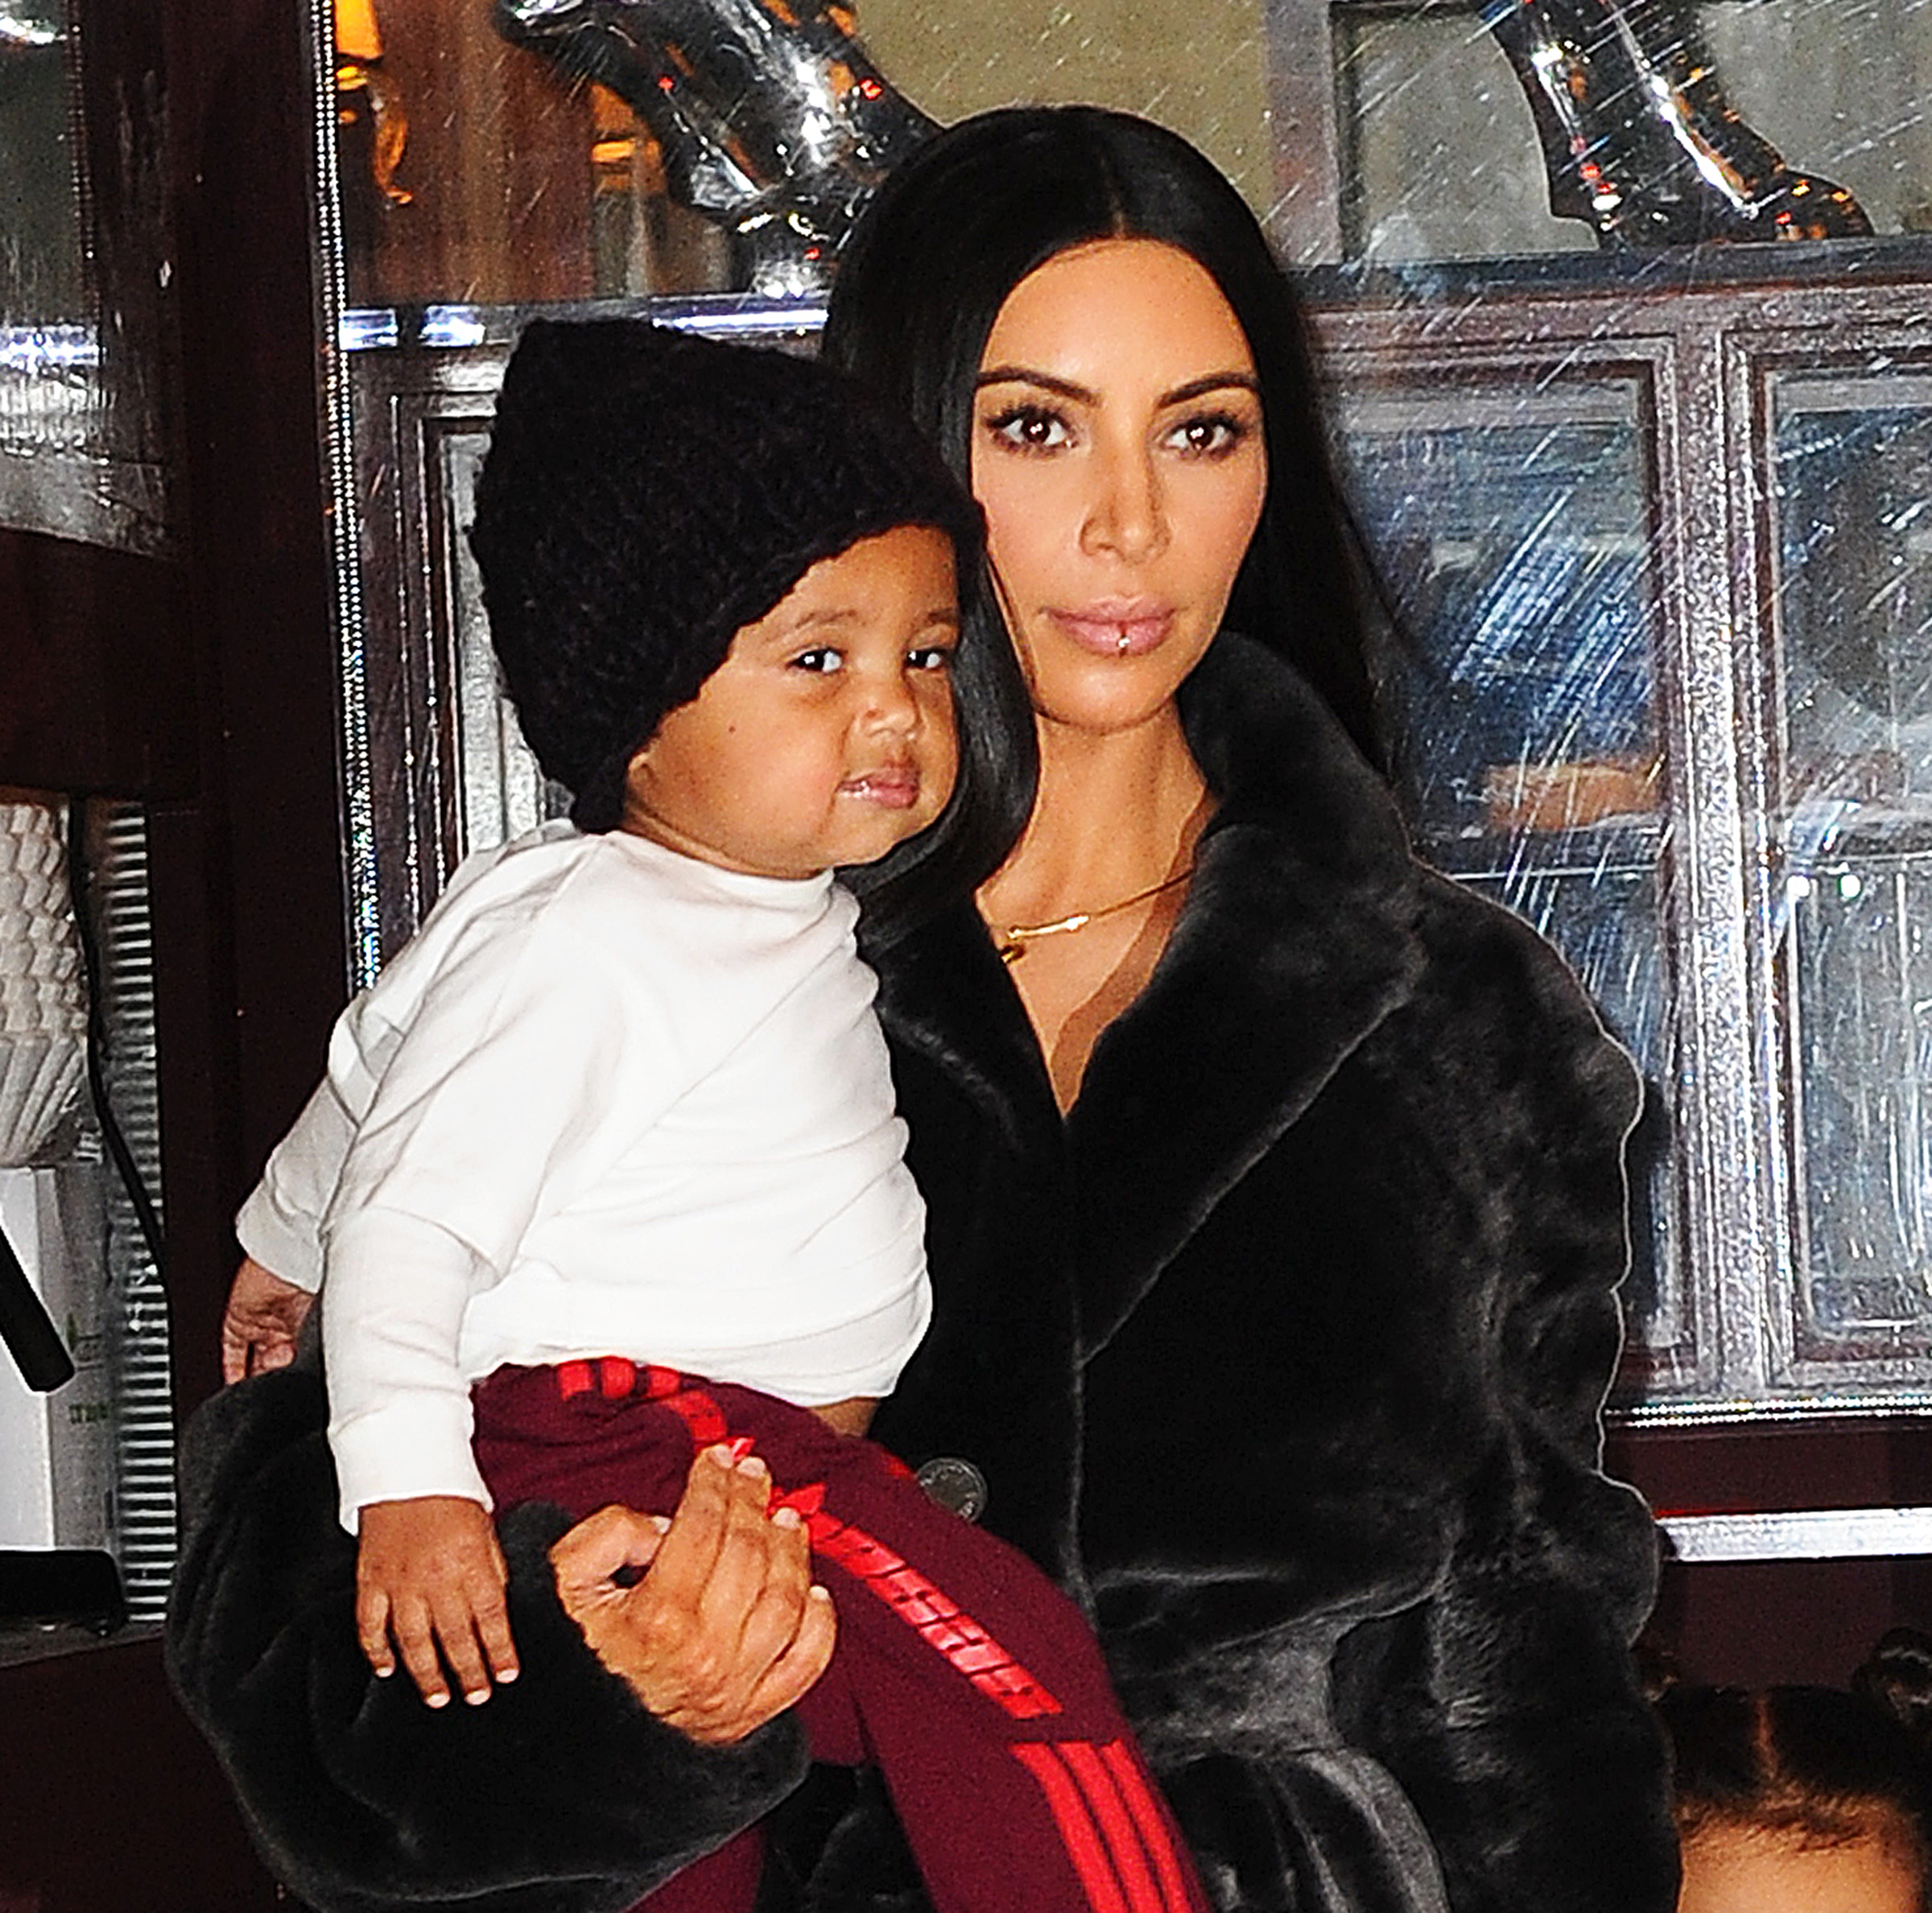 Kim Kardashian carries Saint West  as she heads to lunch at Cipriani in NYC <P> Pictured: Kim Kardashian West <B>Ref: SPL1433331  010217  </B><BR/> Picture by: Jawad Elatab / Splash News<BR/> </P><P> <B>Splash News and Pictures</B><BR/> Los Angeles:310-821-2666<BR/> New York:212-619-2666<BR/> London:870-934-2666<BR/> <span id=